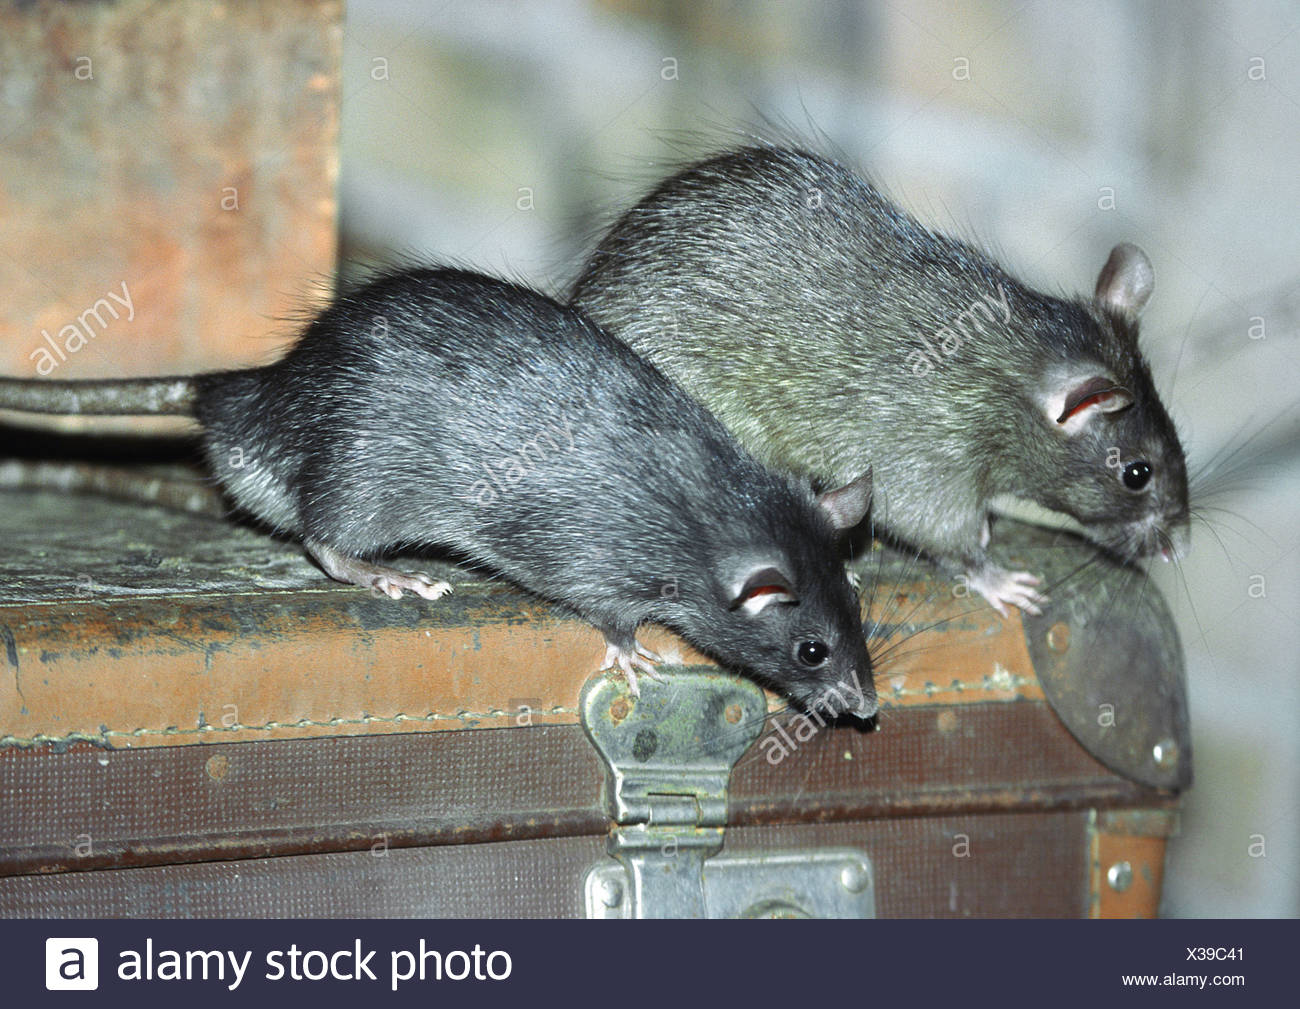 black rat, roof rat, house rat, ship rat (Rattus rattus), two animals on an old suitcase - Stock Image